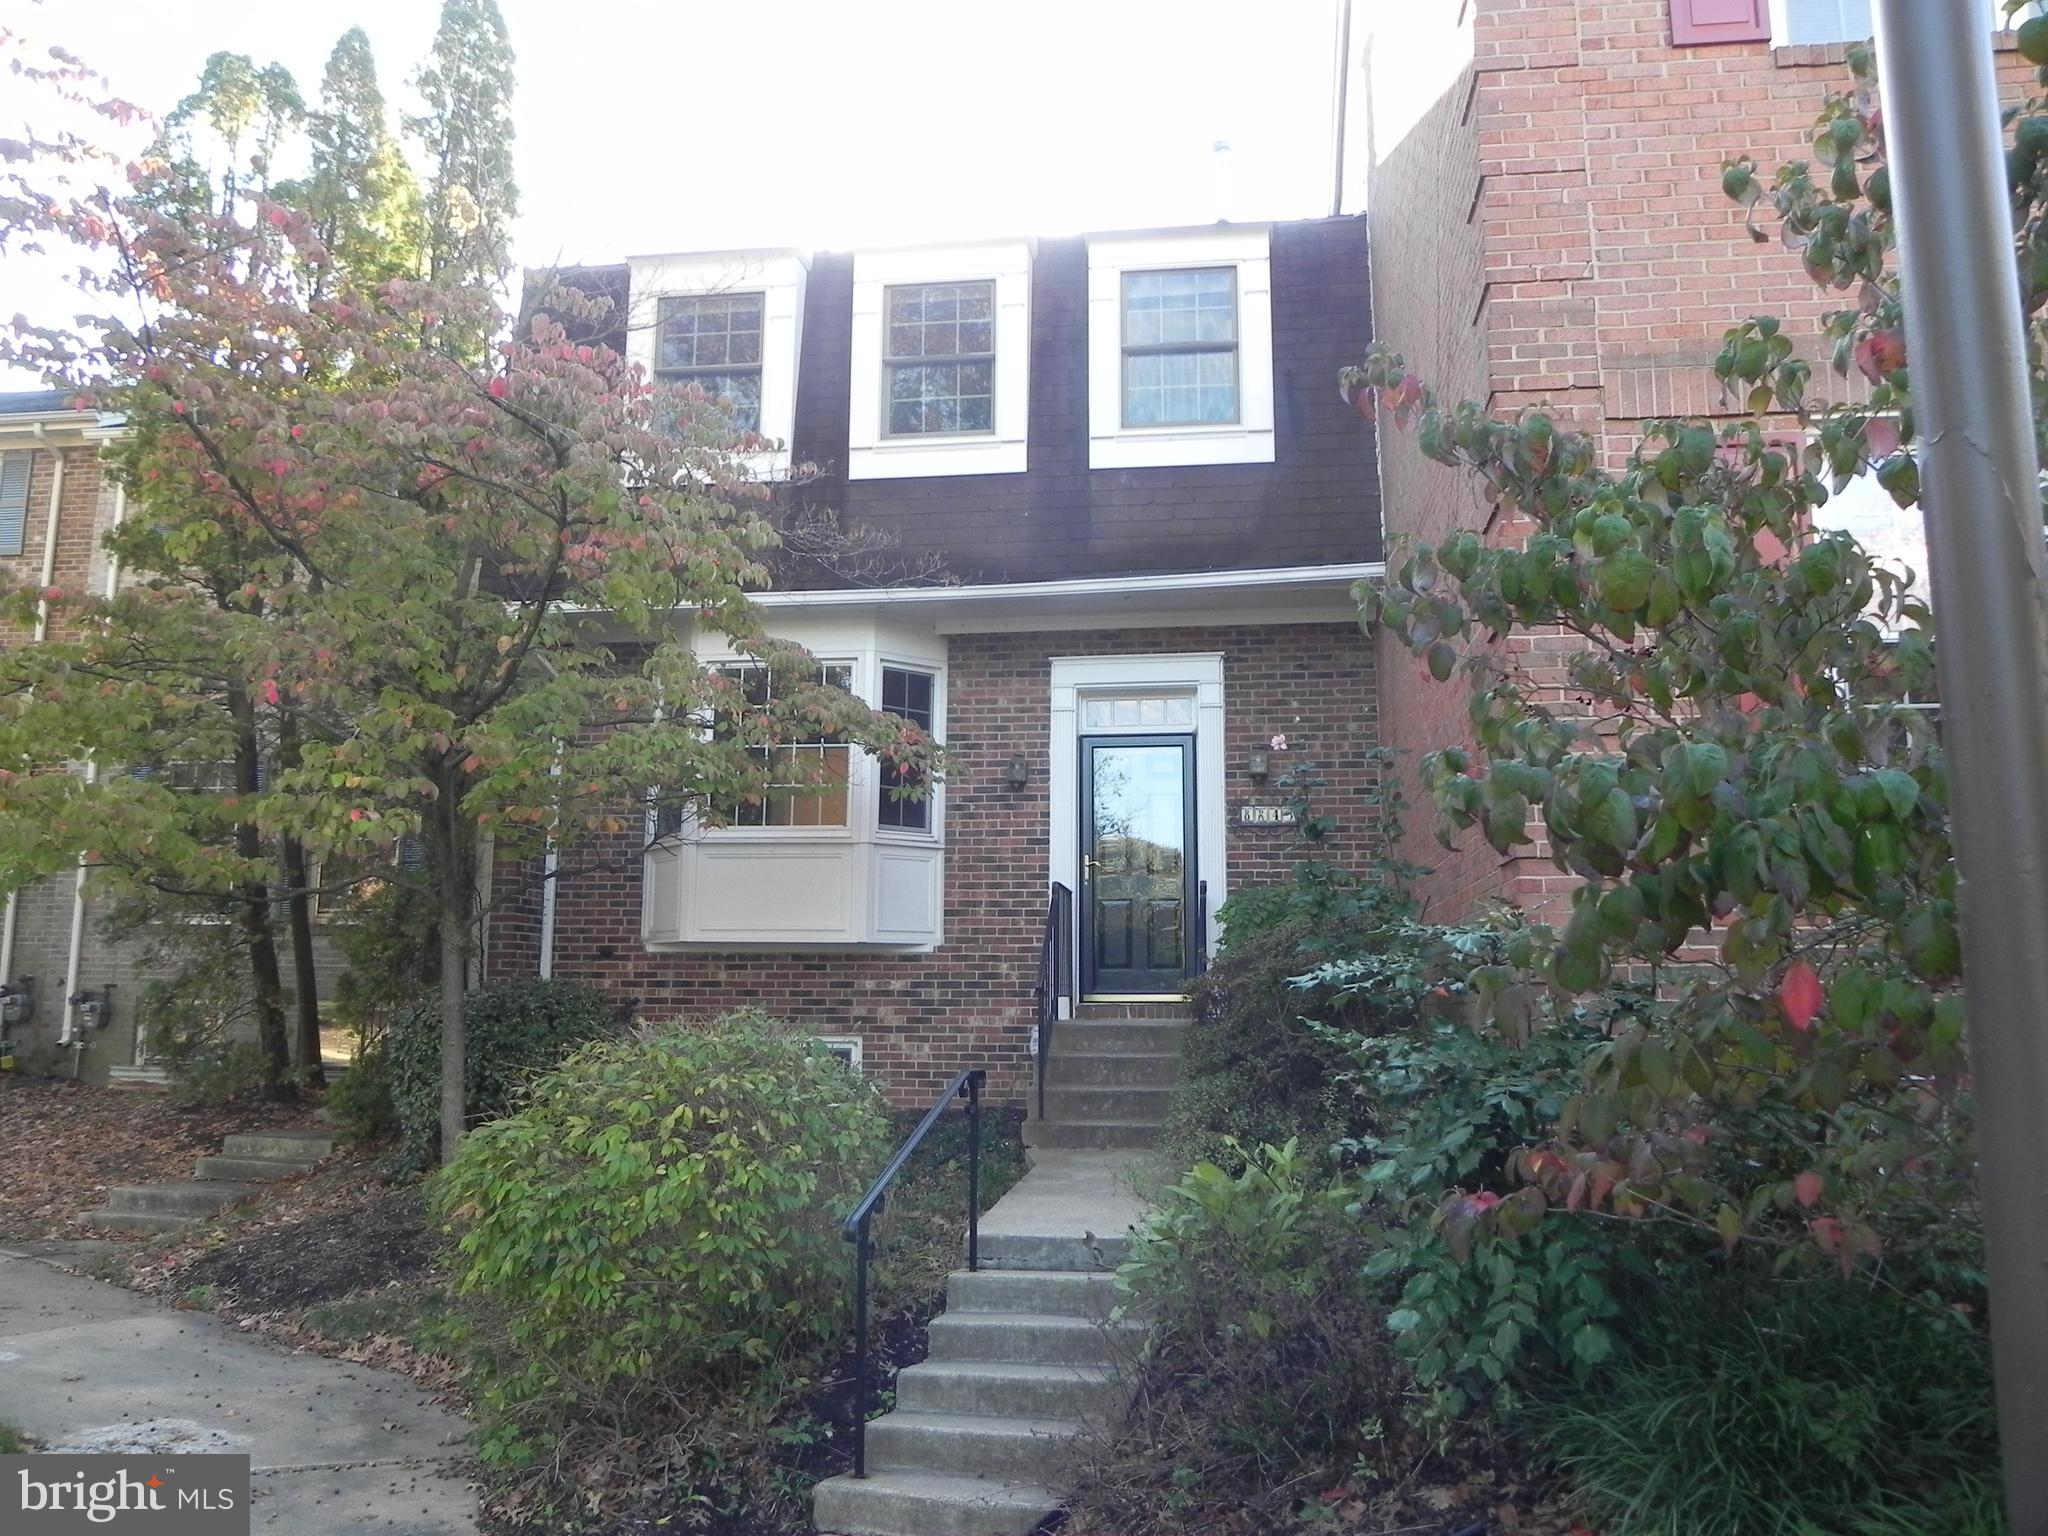 Great townhouse in quiet community.  Features large kitchen with table space, open floor plan on main level, hardwood floors throughout, 2 fireplaces, deck, patio, 4 bedrooms 3.5 baths.  Great house call for a showing